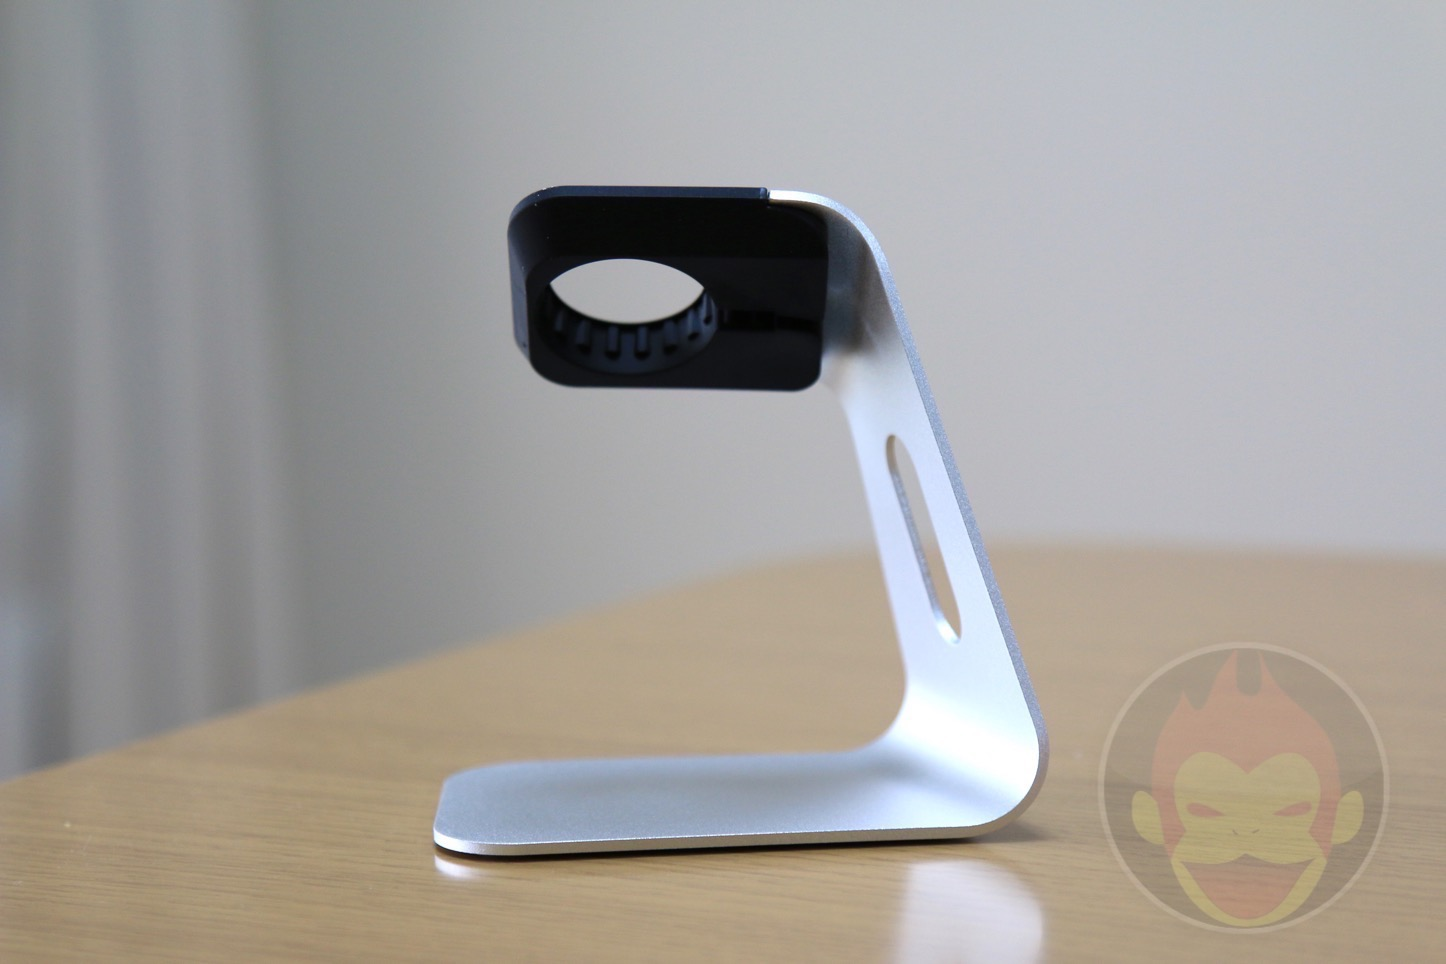 Spigen Apple Watch Stand